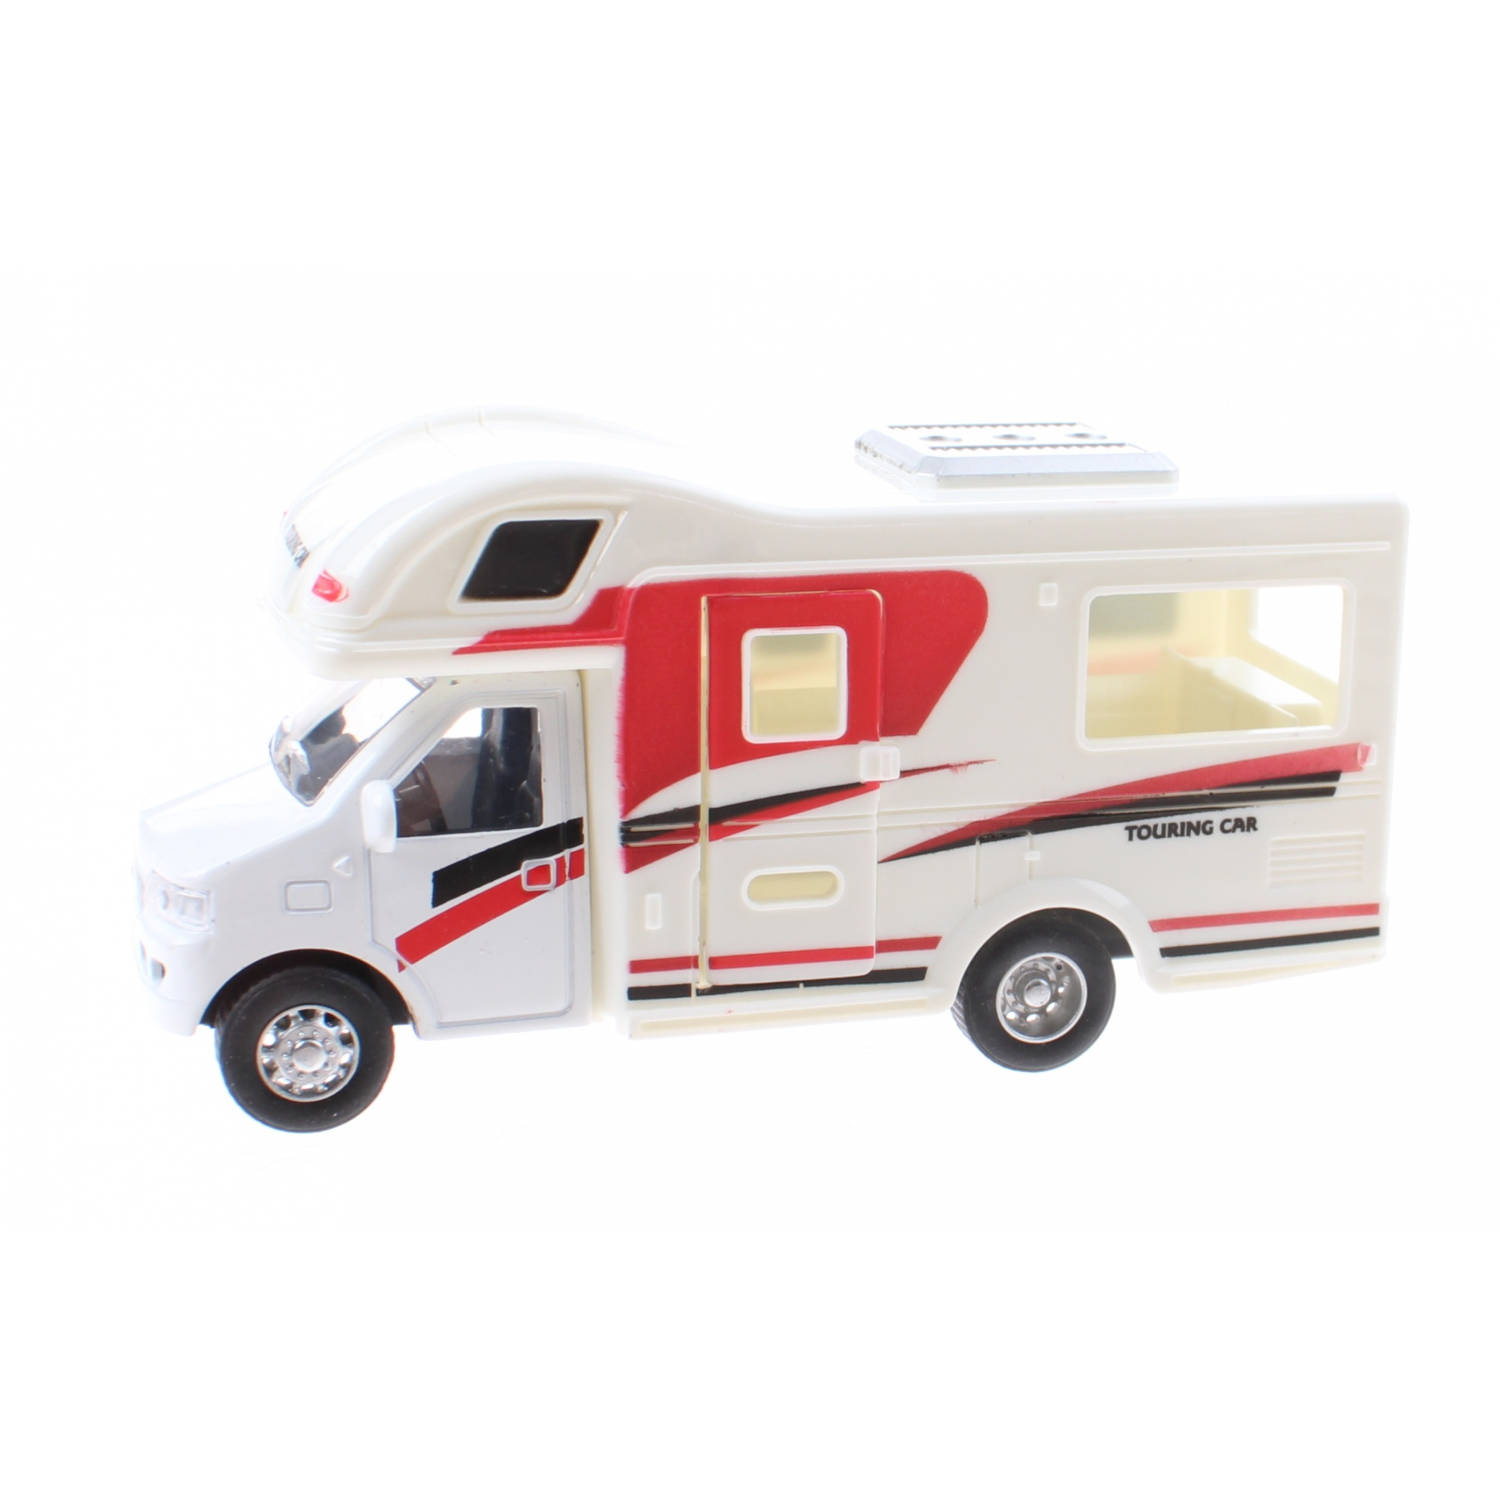 Jonotoys Touring Car camper 12,5 cm diecast wit/rood